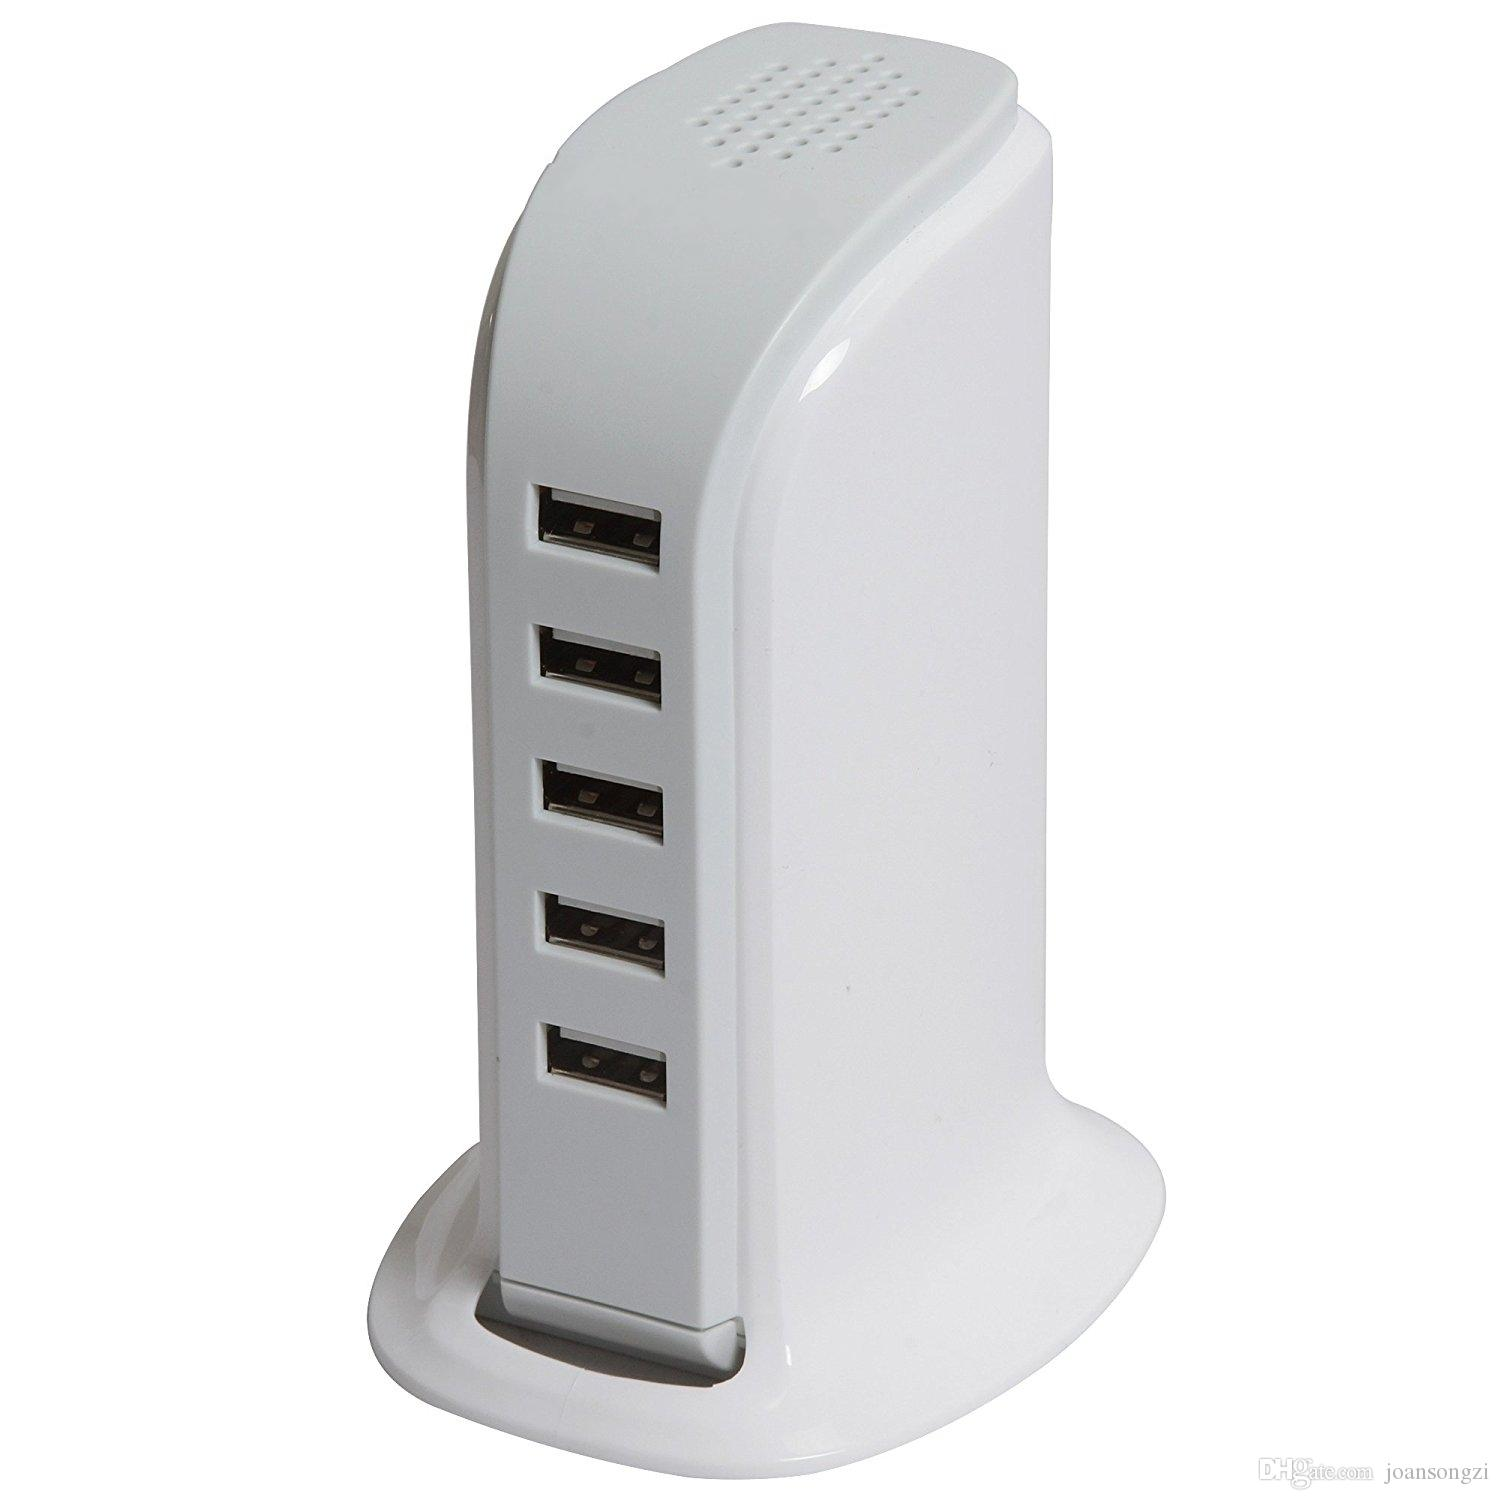 5V 6A Mobile Chargers 6 Port USB Charging Station Socket 30W Desktop USB Charger Power Adapter Rapid Charging for iPhone Samsung and More